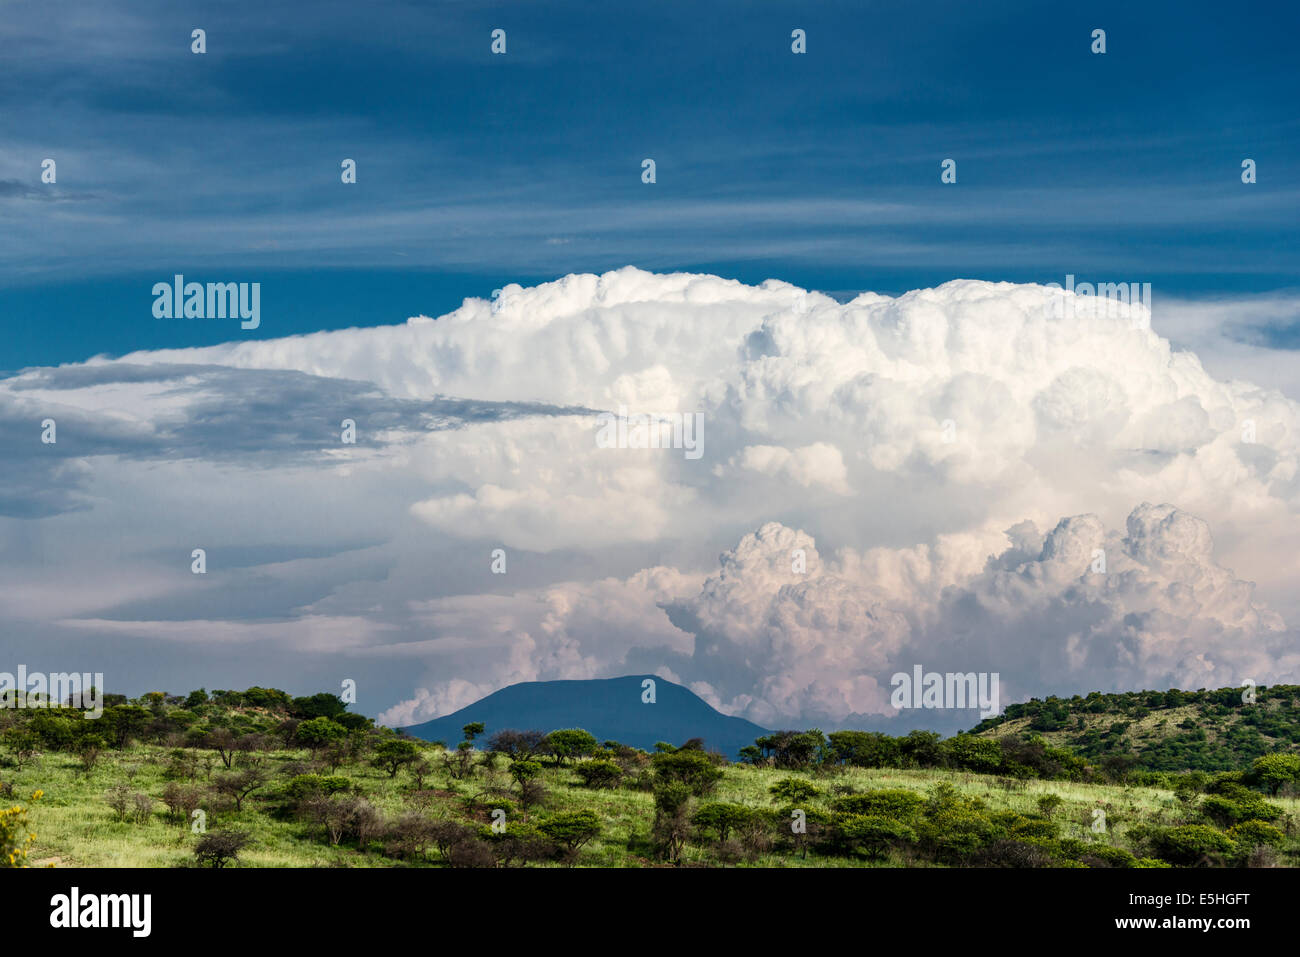 Cloud formation above trees with view to horizon in Nambiti Reserve, Kwa-Zulu Natal, South Africa - Stock Image